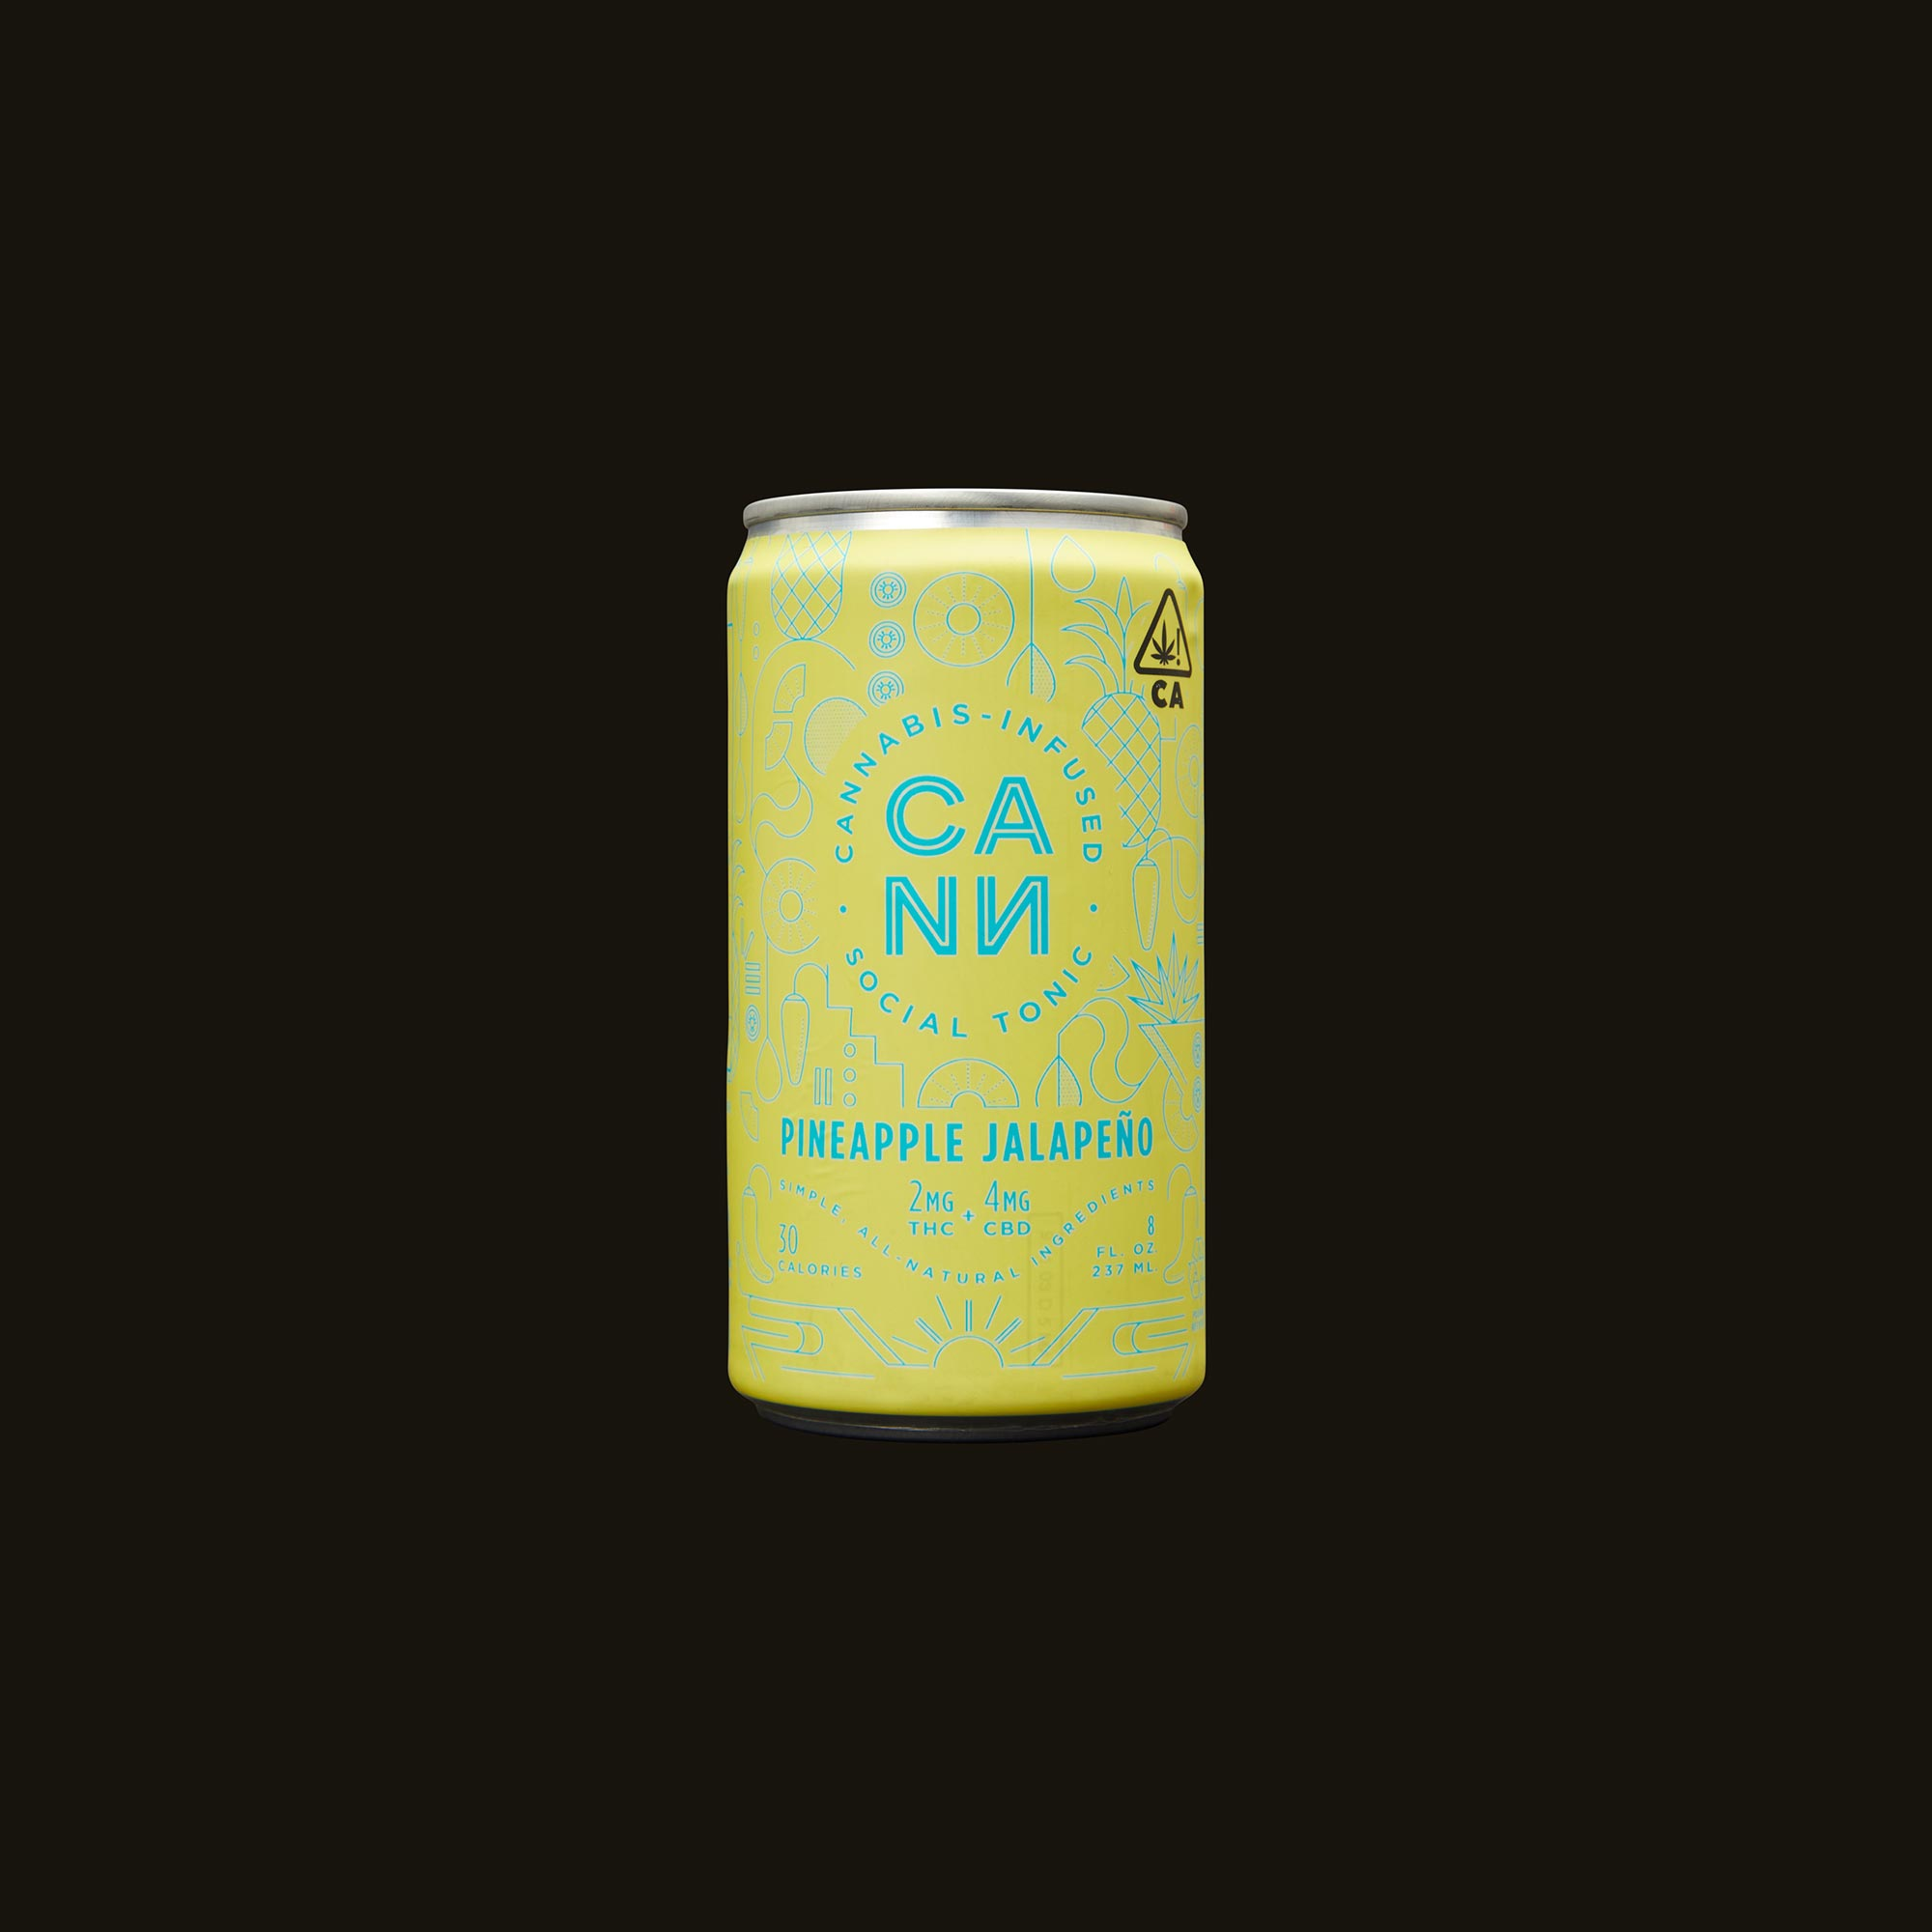 Cann Pineapple Jalapeno Social Tonic Front Can